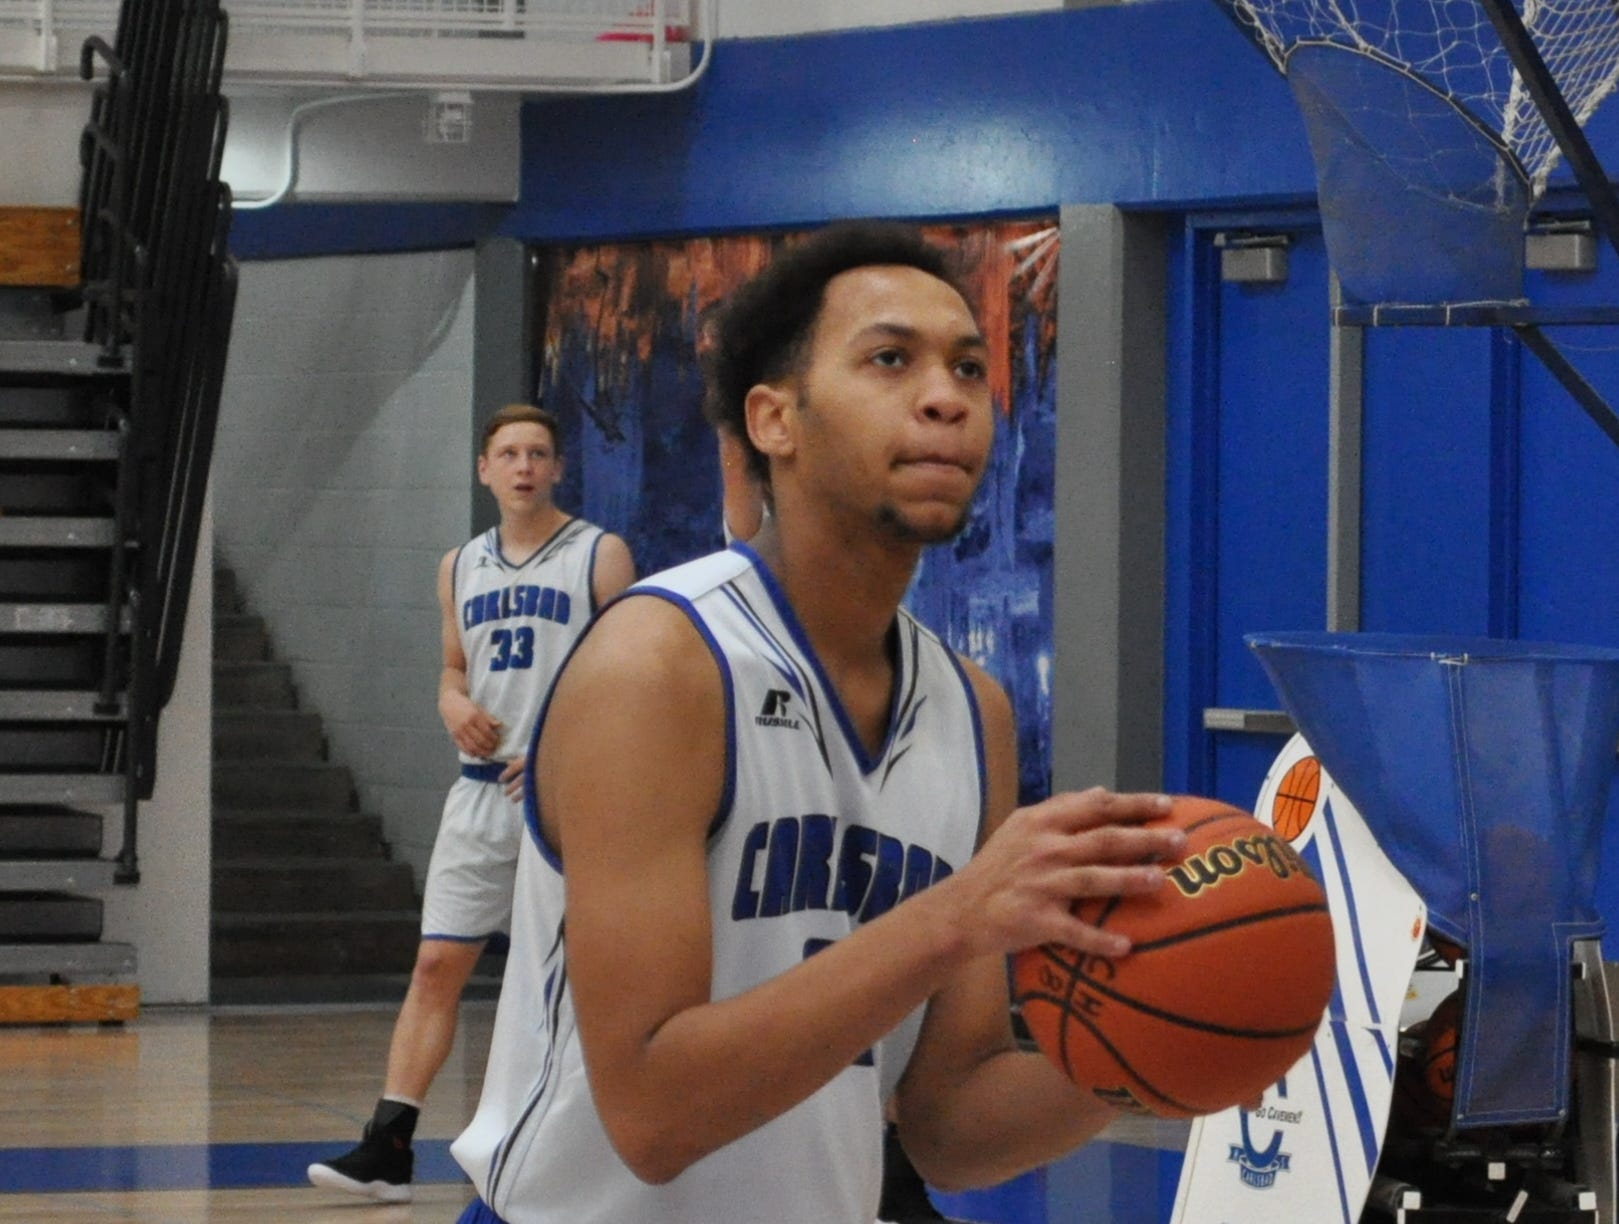 Phillip Lee during Tuesday's practice. Carlsbad opens the season Nov. 29 in Santa Fe as part of the Capital Tournament.